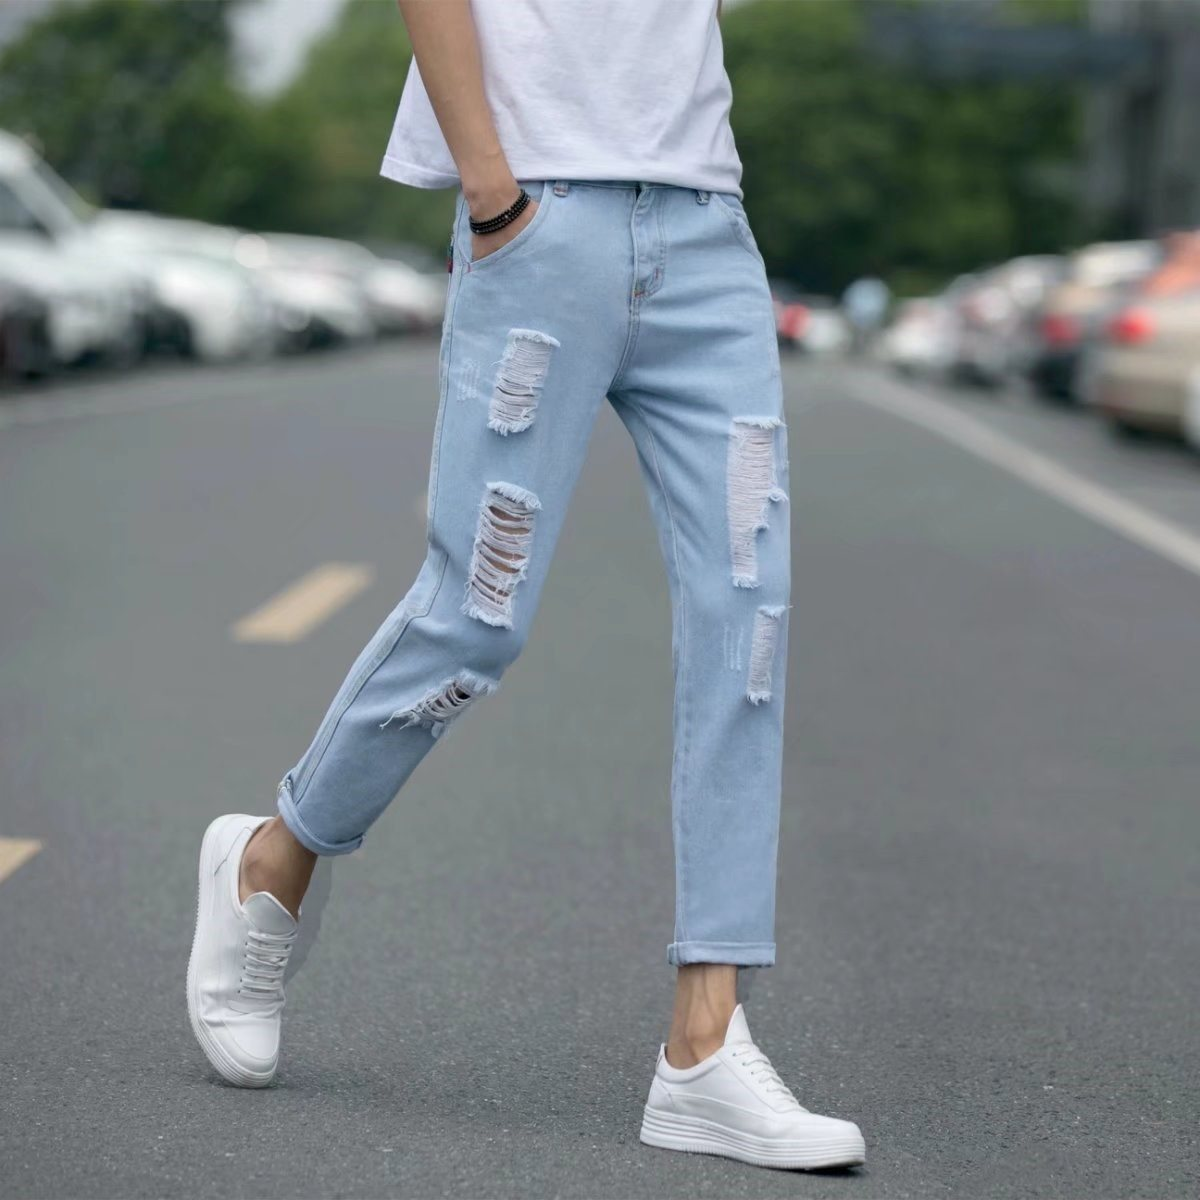 Spring And Summer Light Color Hole Jeans Men's Skinny Youth Ankle Banded Pants Students Capri Pants Vulnerability Light Blue Sm